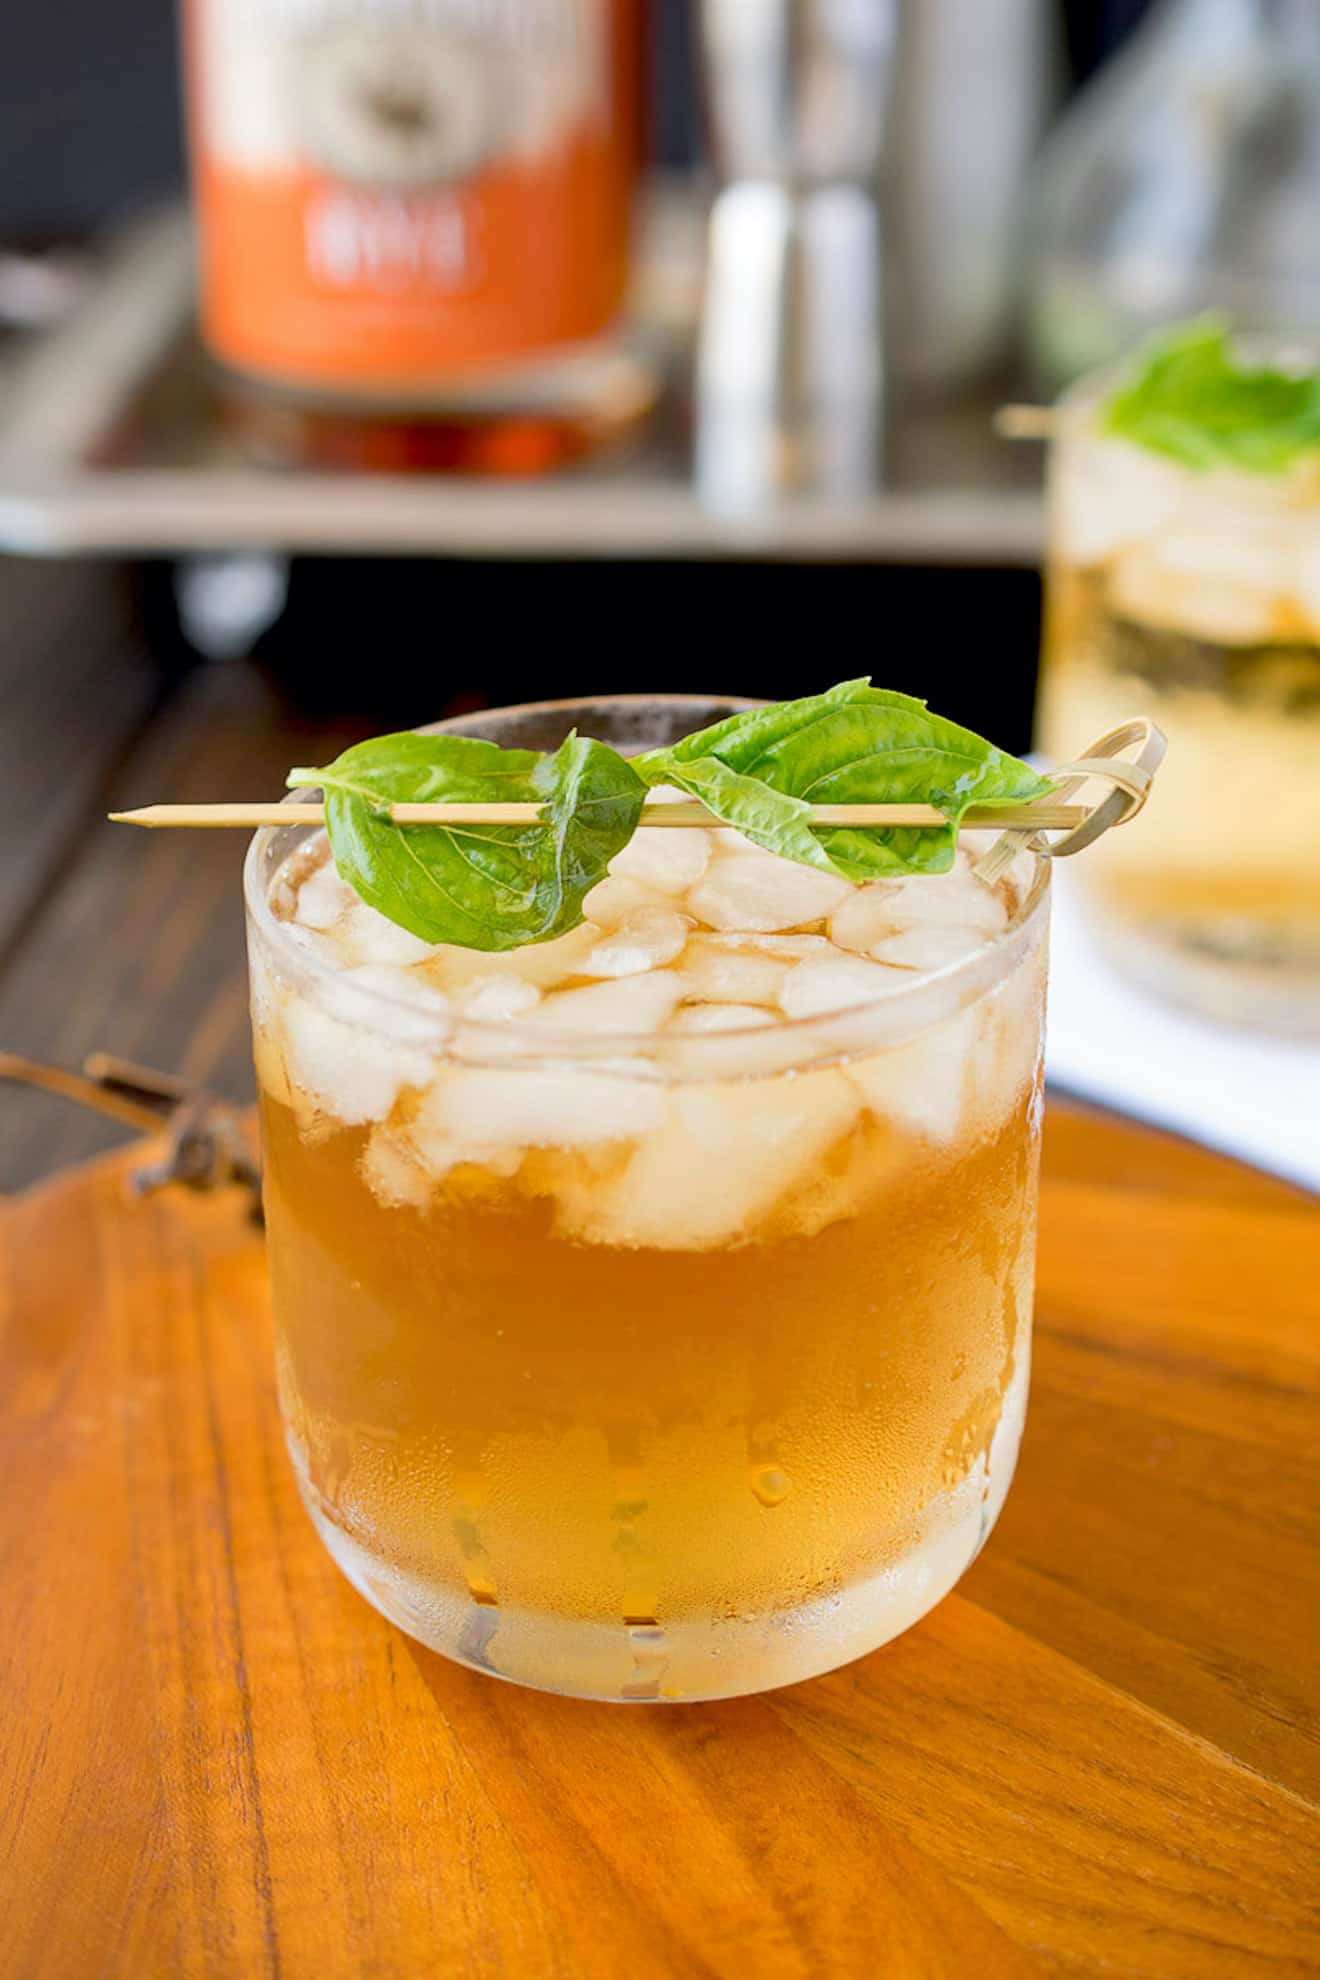 A basil julep from the side